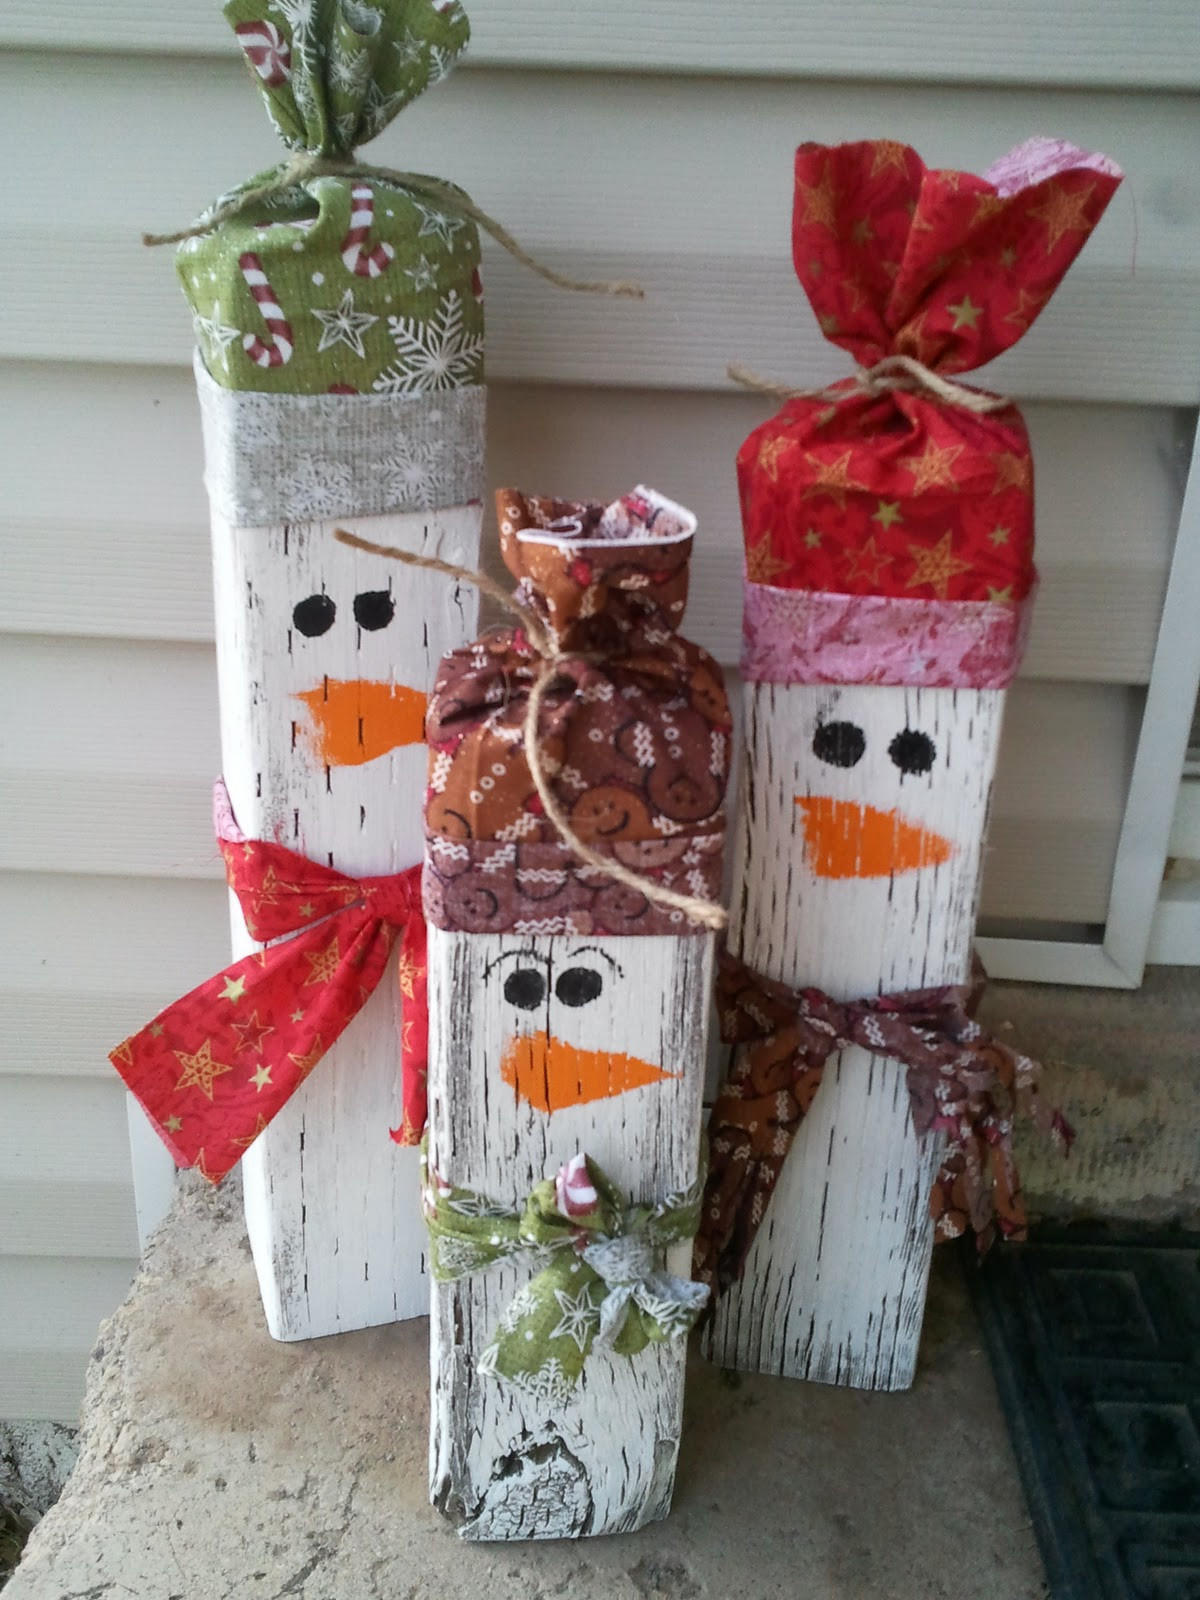 Best ideas about Christmas DIY Decorations . Save or Pin Always Something 10 DIY Christmas Decor Ideas Now.